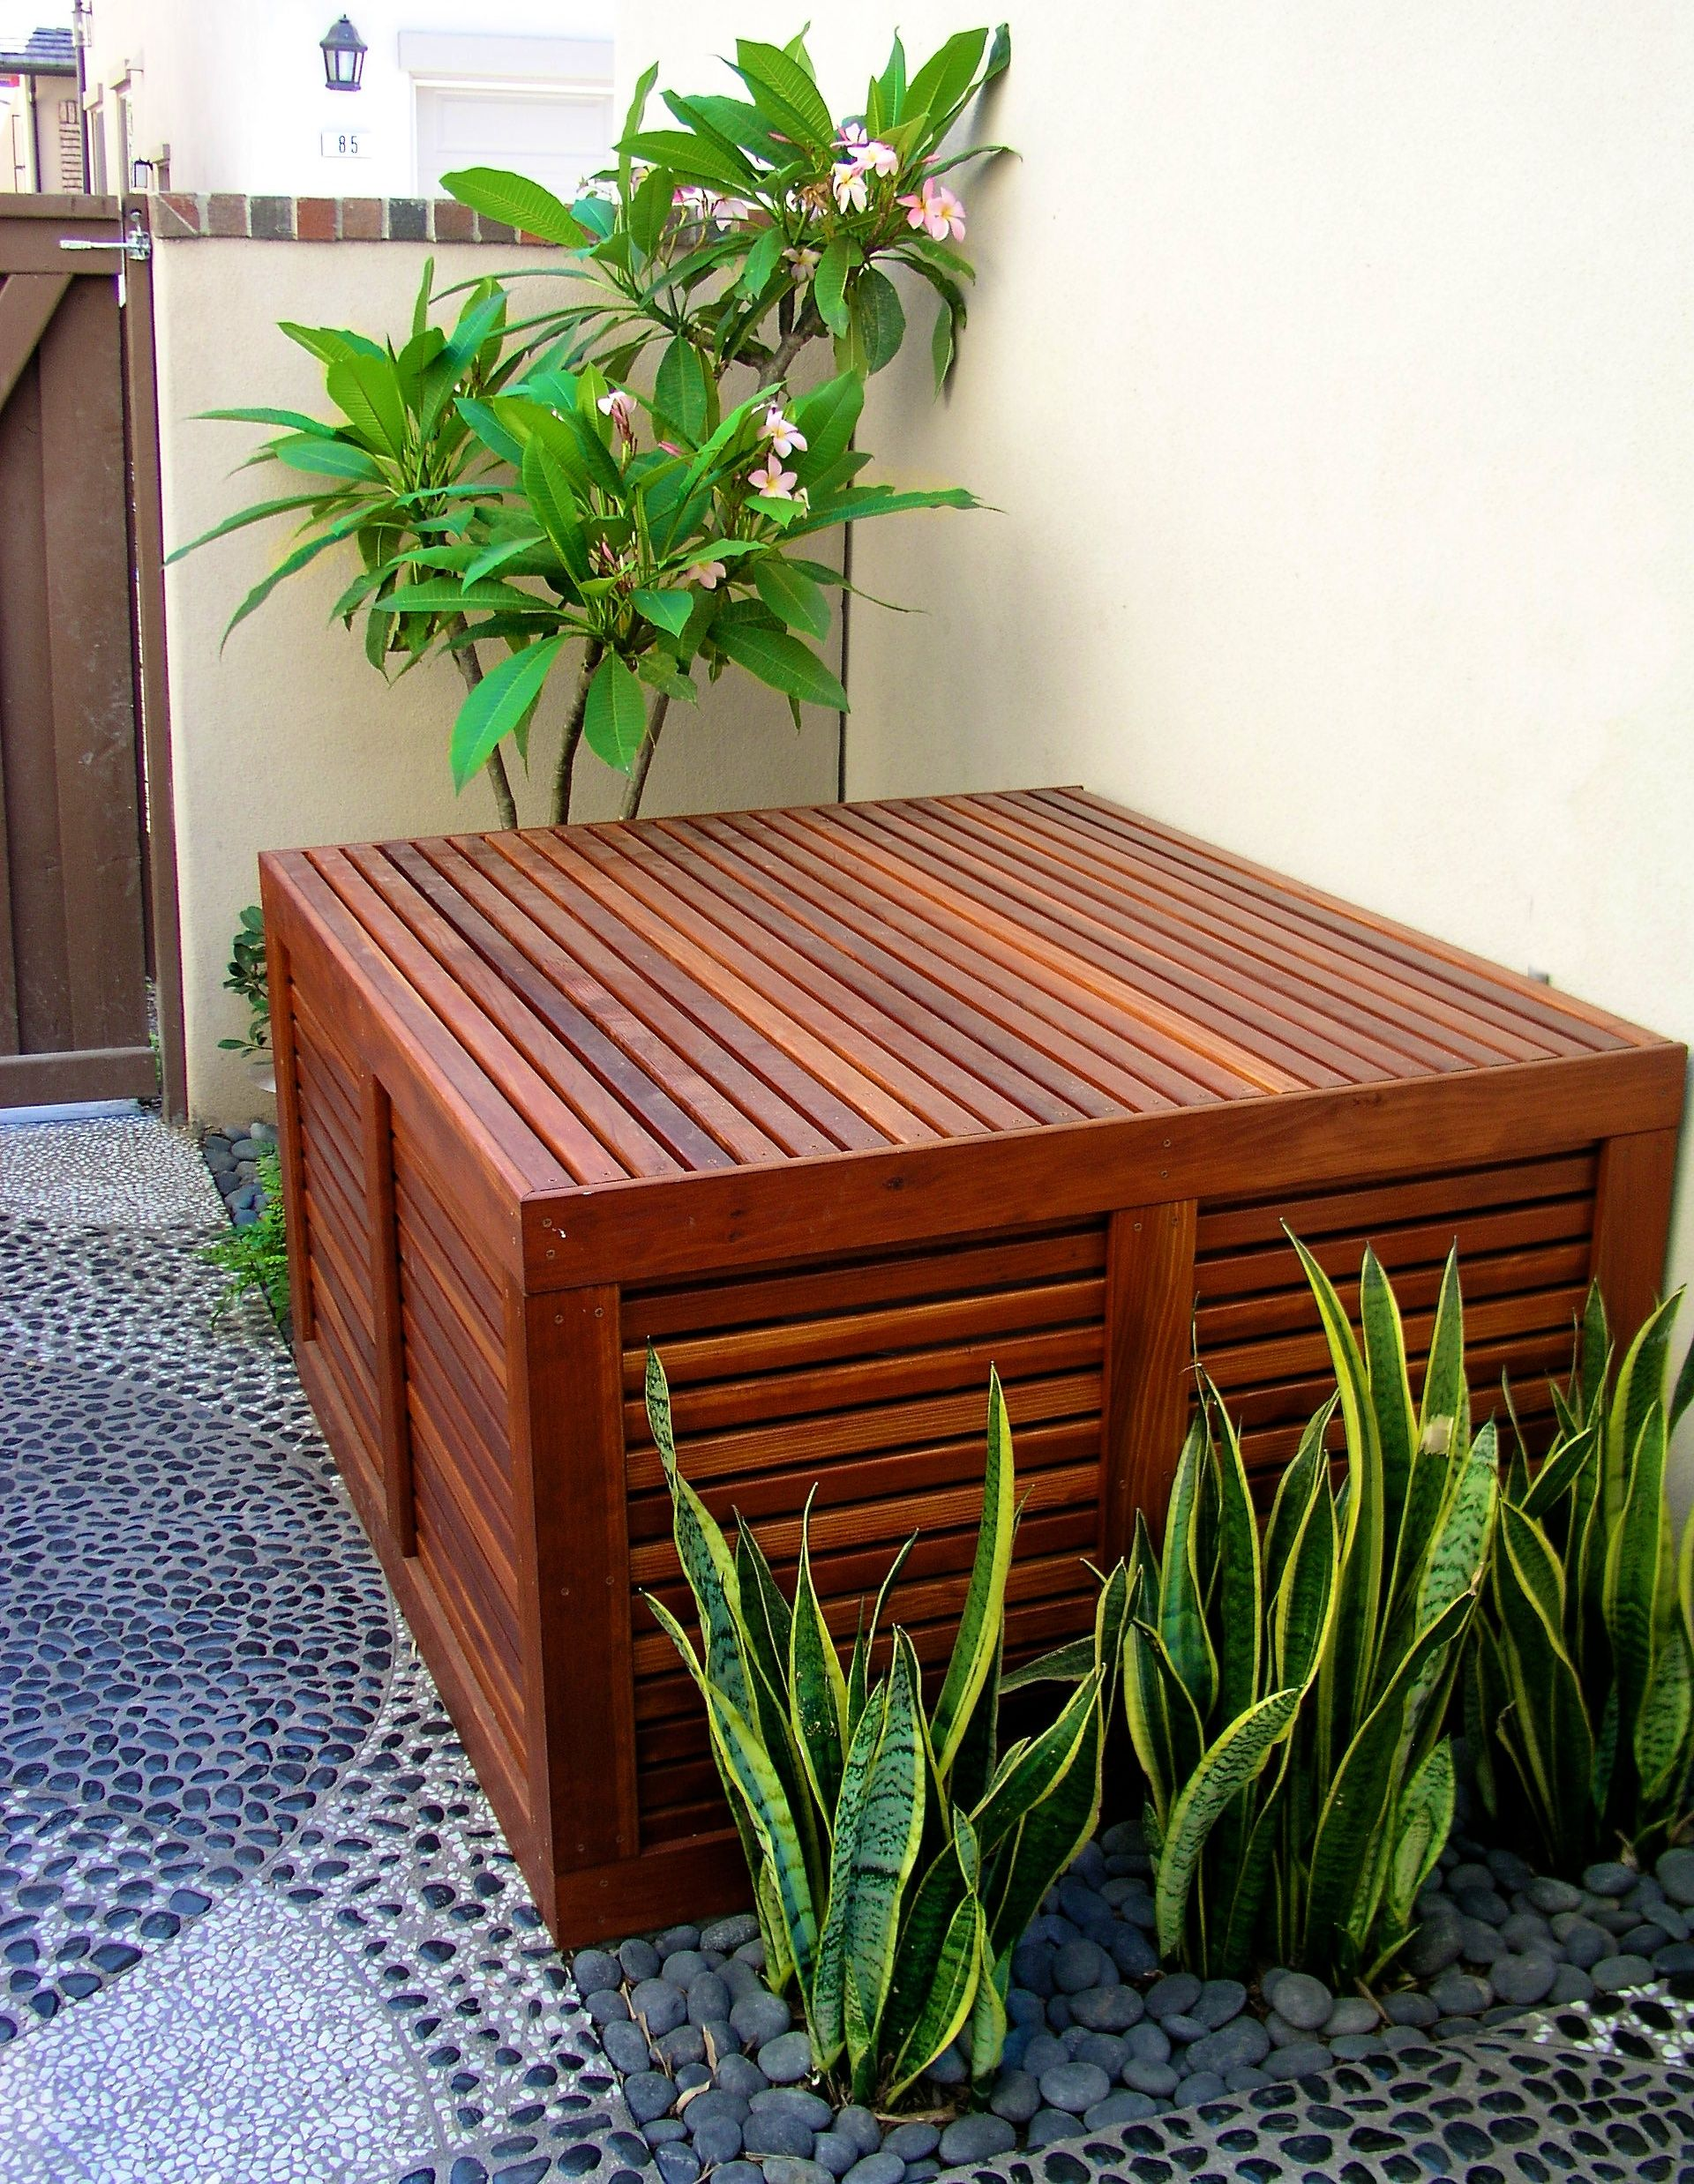 Redwood Airconditioning A/C Cover. Studio H Landscape